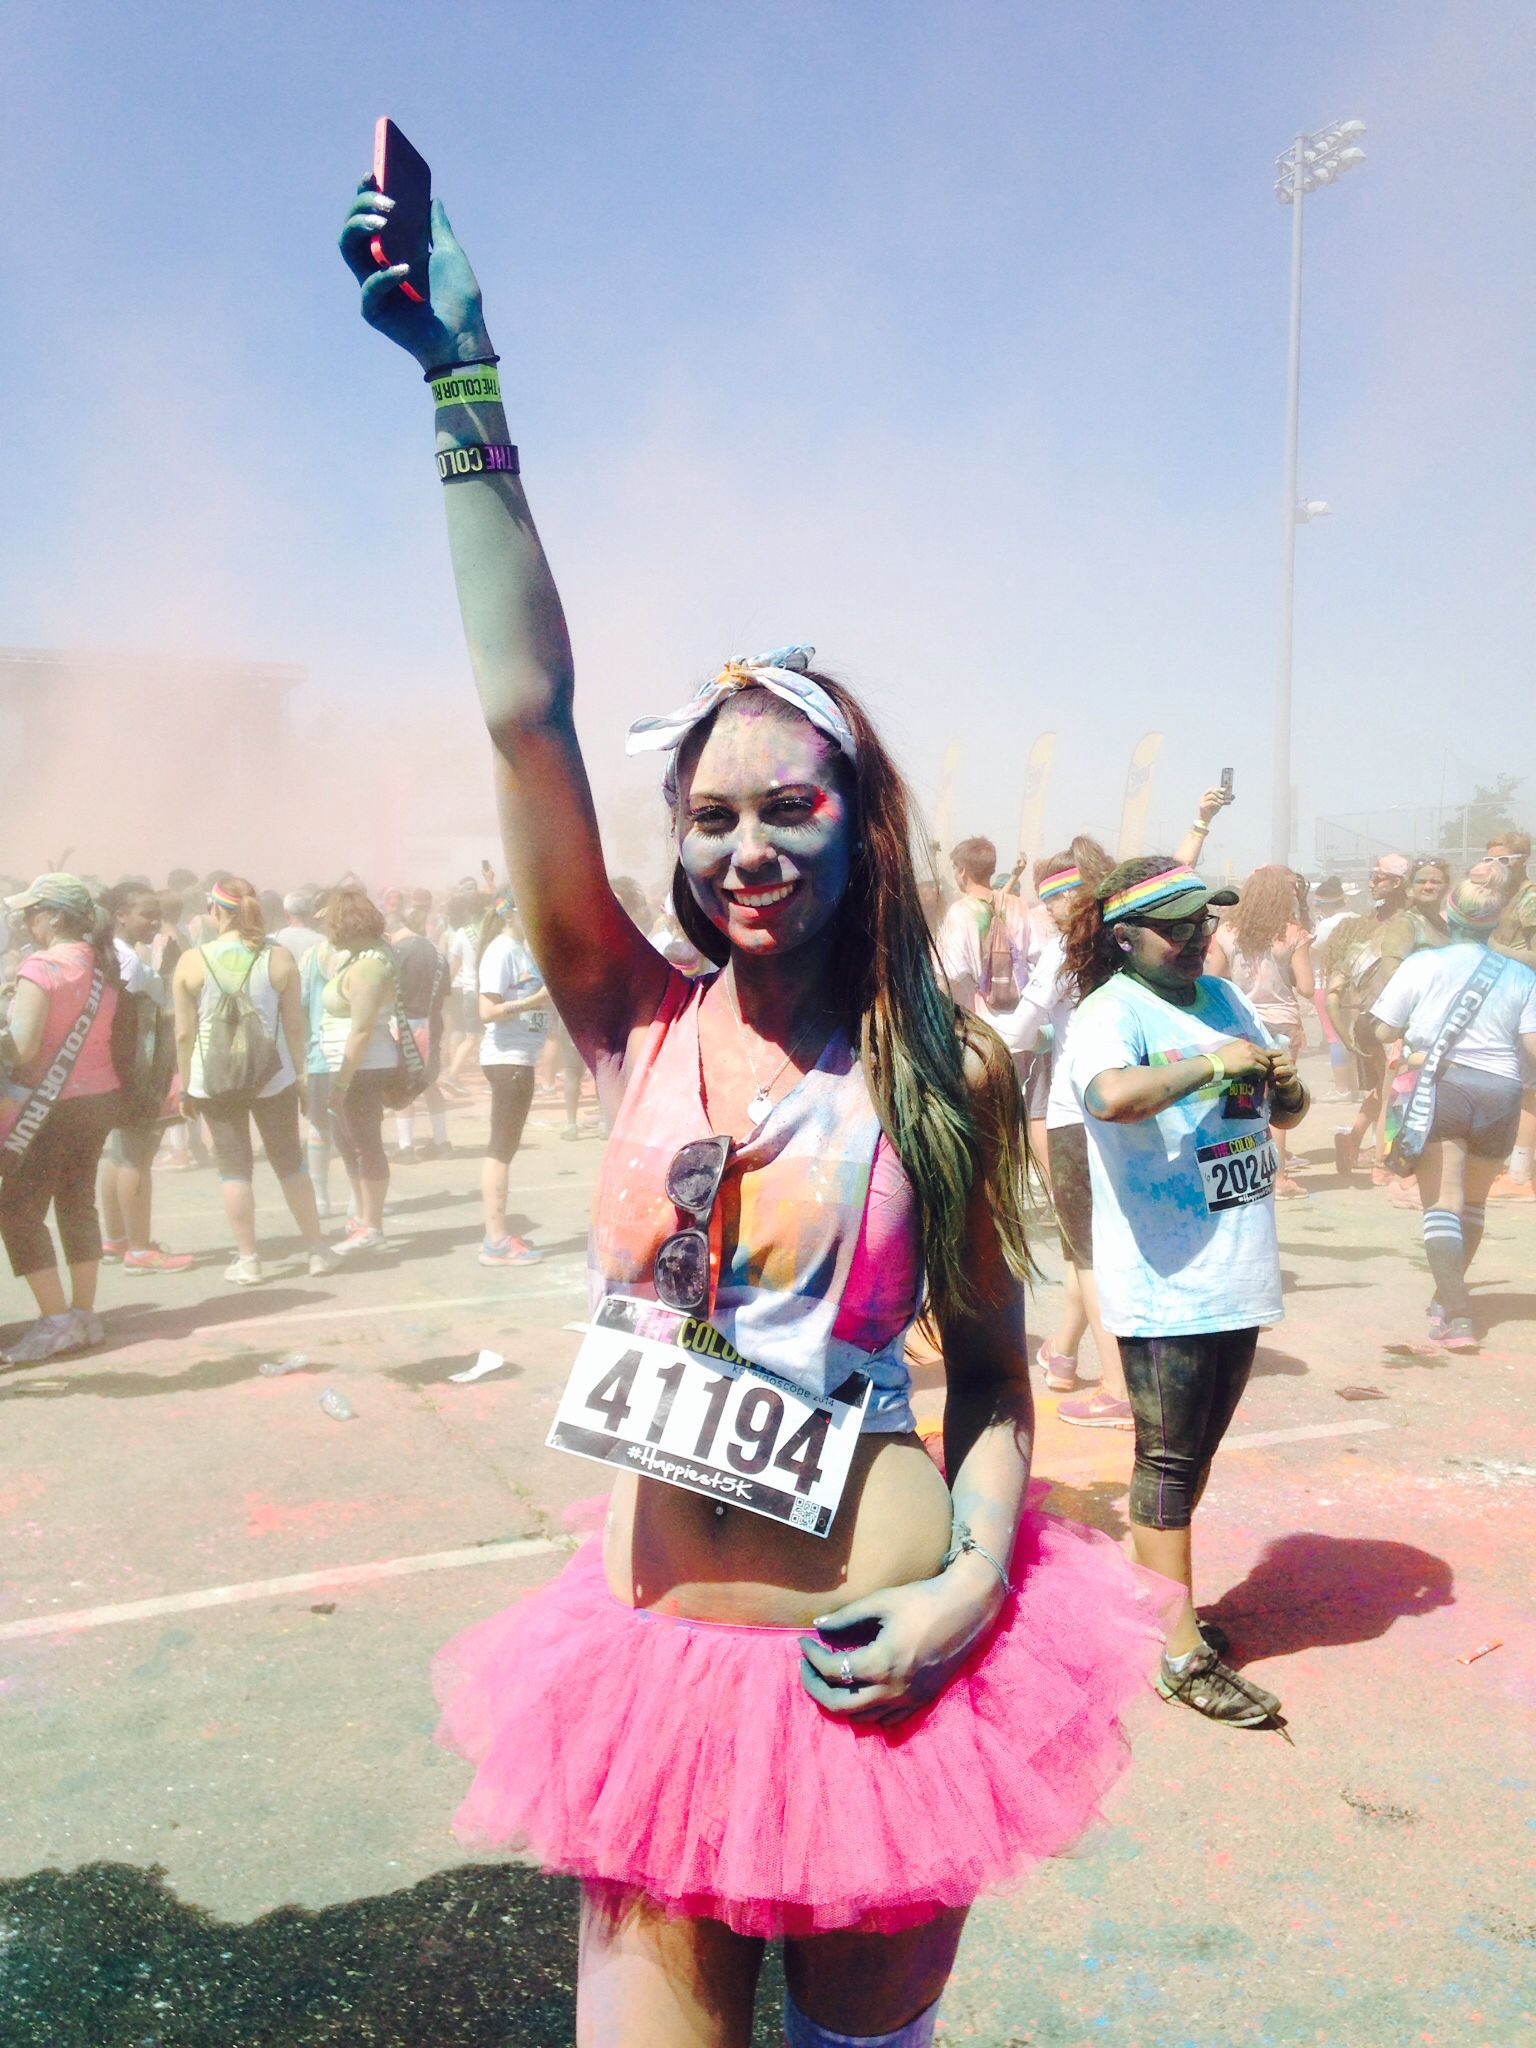 Daftar Harga The Pink Panther 2 A Mixed Bag Of Mayhem 3 Daddy Mojo Atteenahijab Atiqa Raudha Biru Turkis Color Run Outfit Shirt Tutu From Party City Thigh